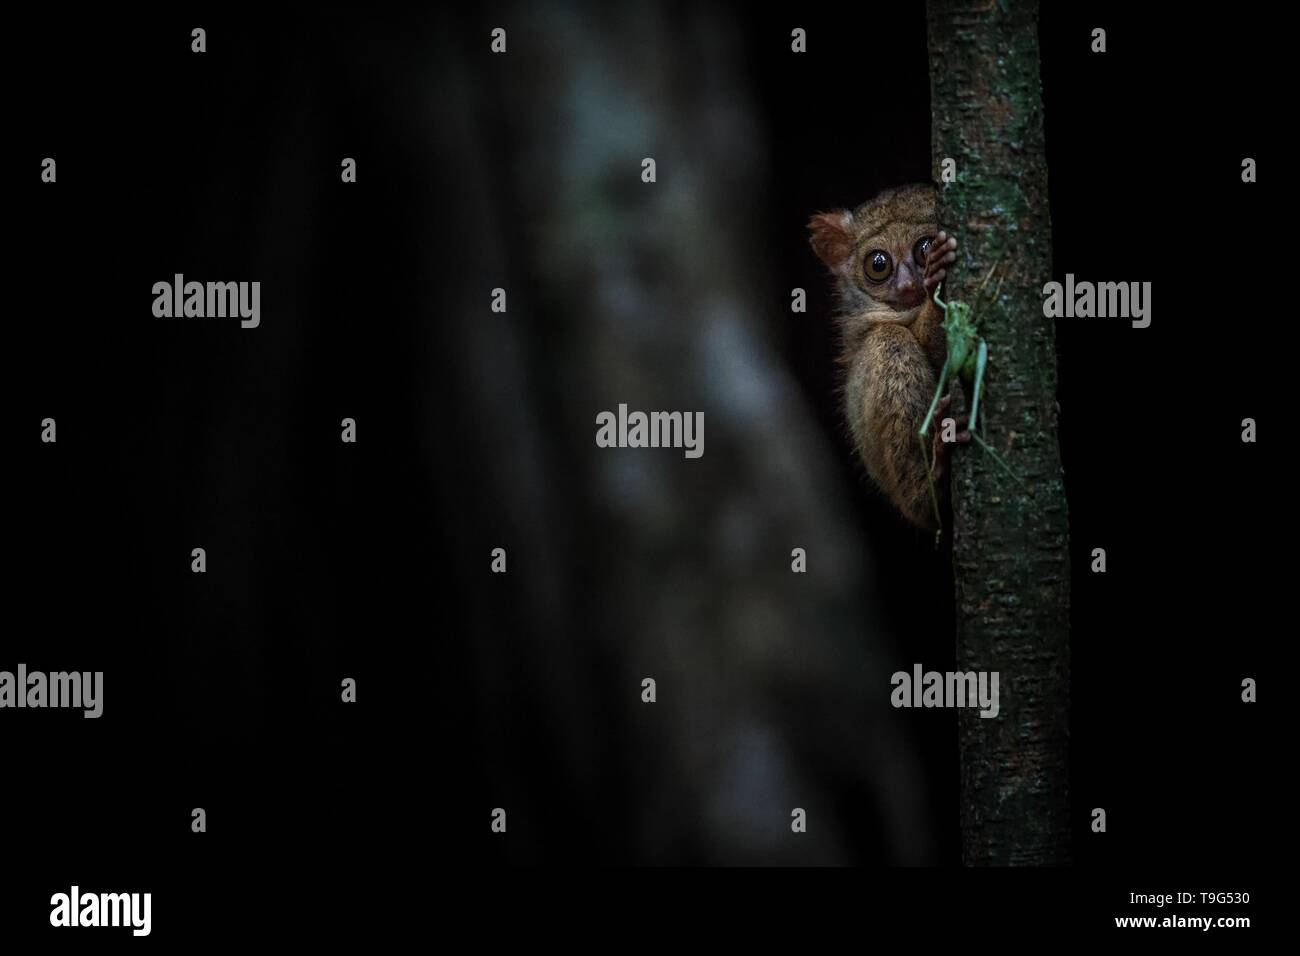 Spectral Tarsier, Tarsius, portrait of rare endemic nocturnal mammal trying to catch and eat grasshopper, cute primate in large ficus tree in jungle,  - Stock Image